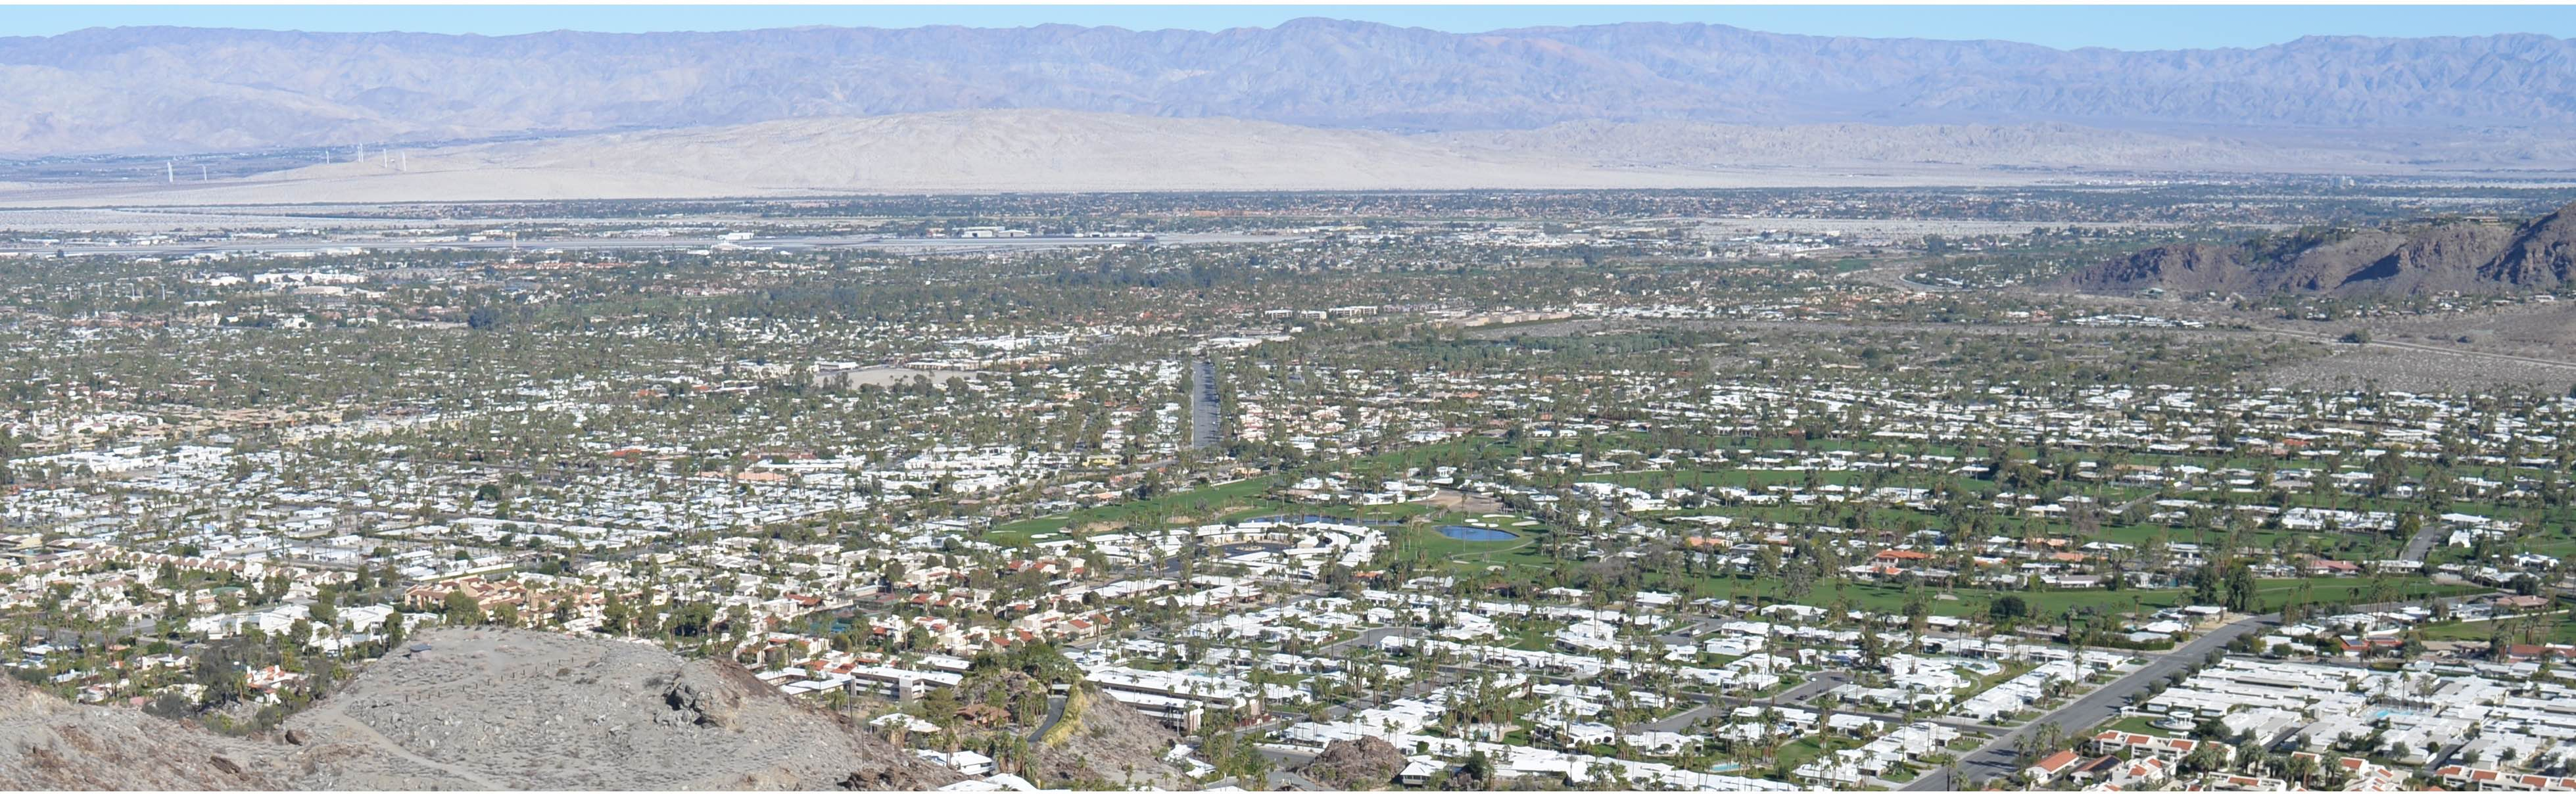 Palm Springs Simonetta Kennett Viewpoint View 5 25-12-15